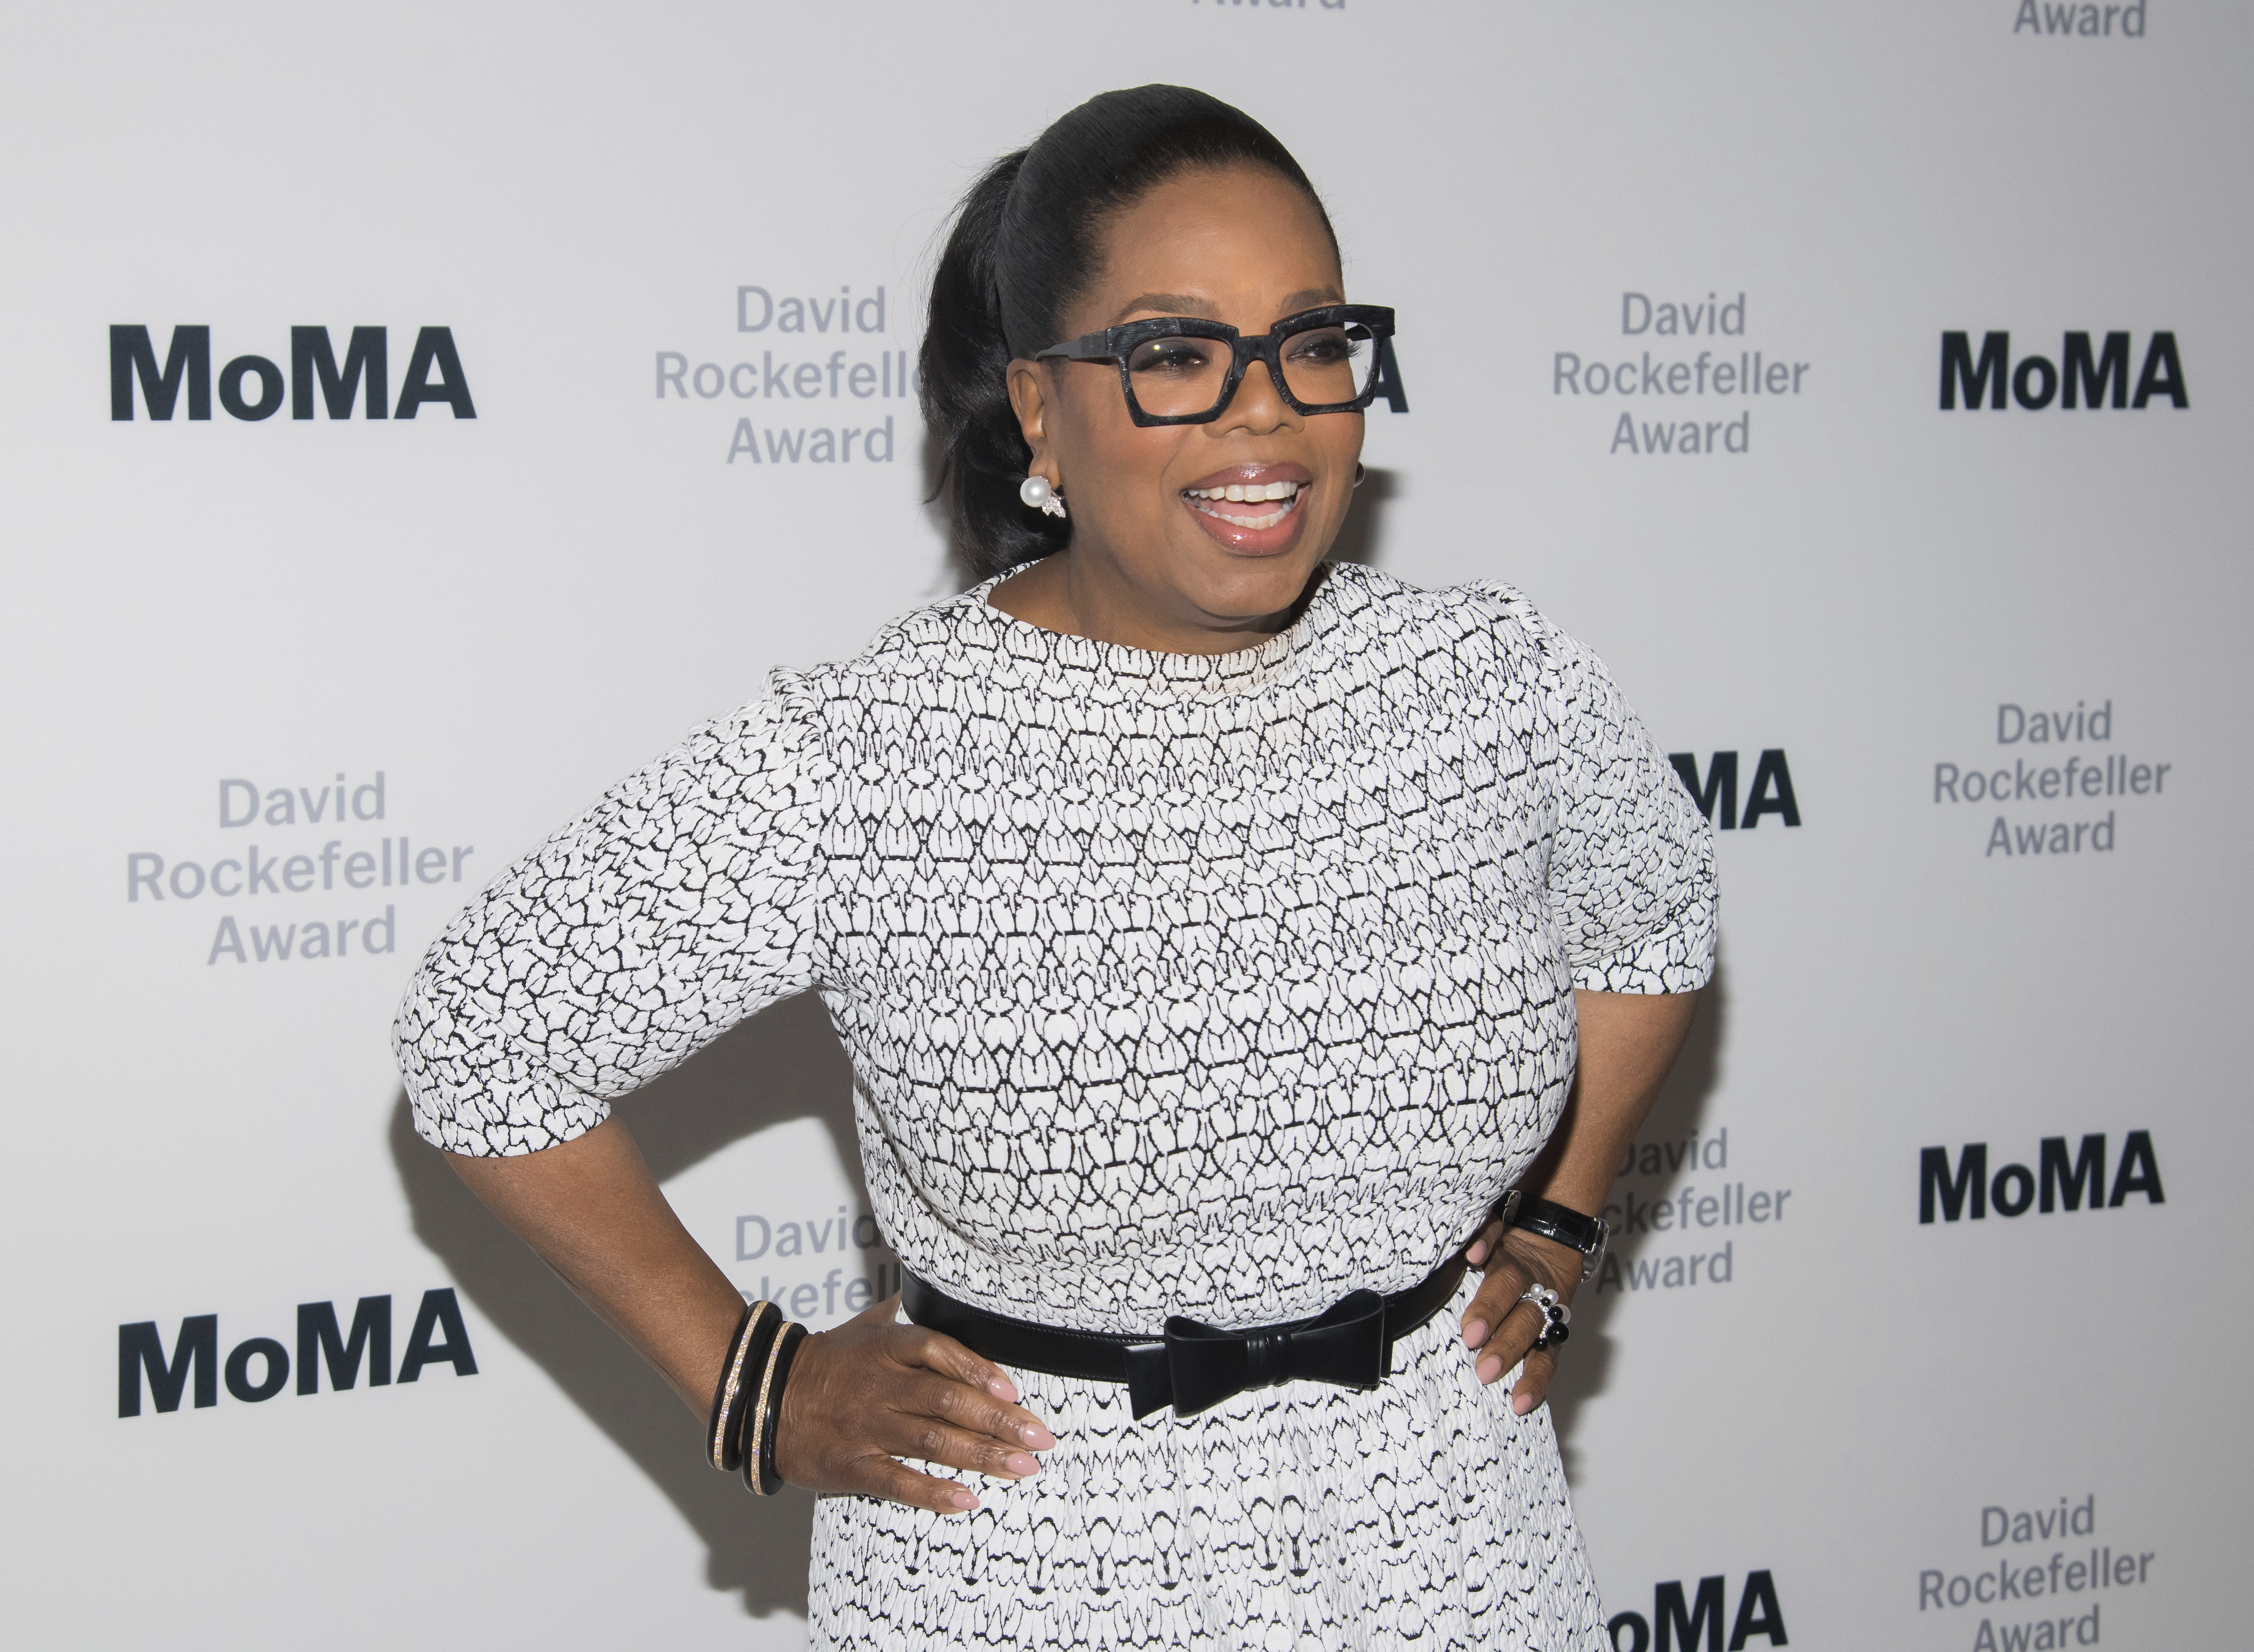 Oprah Winfrey attends The Museum of Modern Art's David Rockefeller Award Luncheon honoring her at the Ziegfeld Ballroom in New York in 2018.